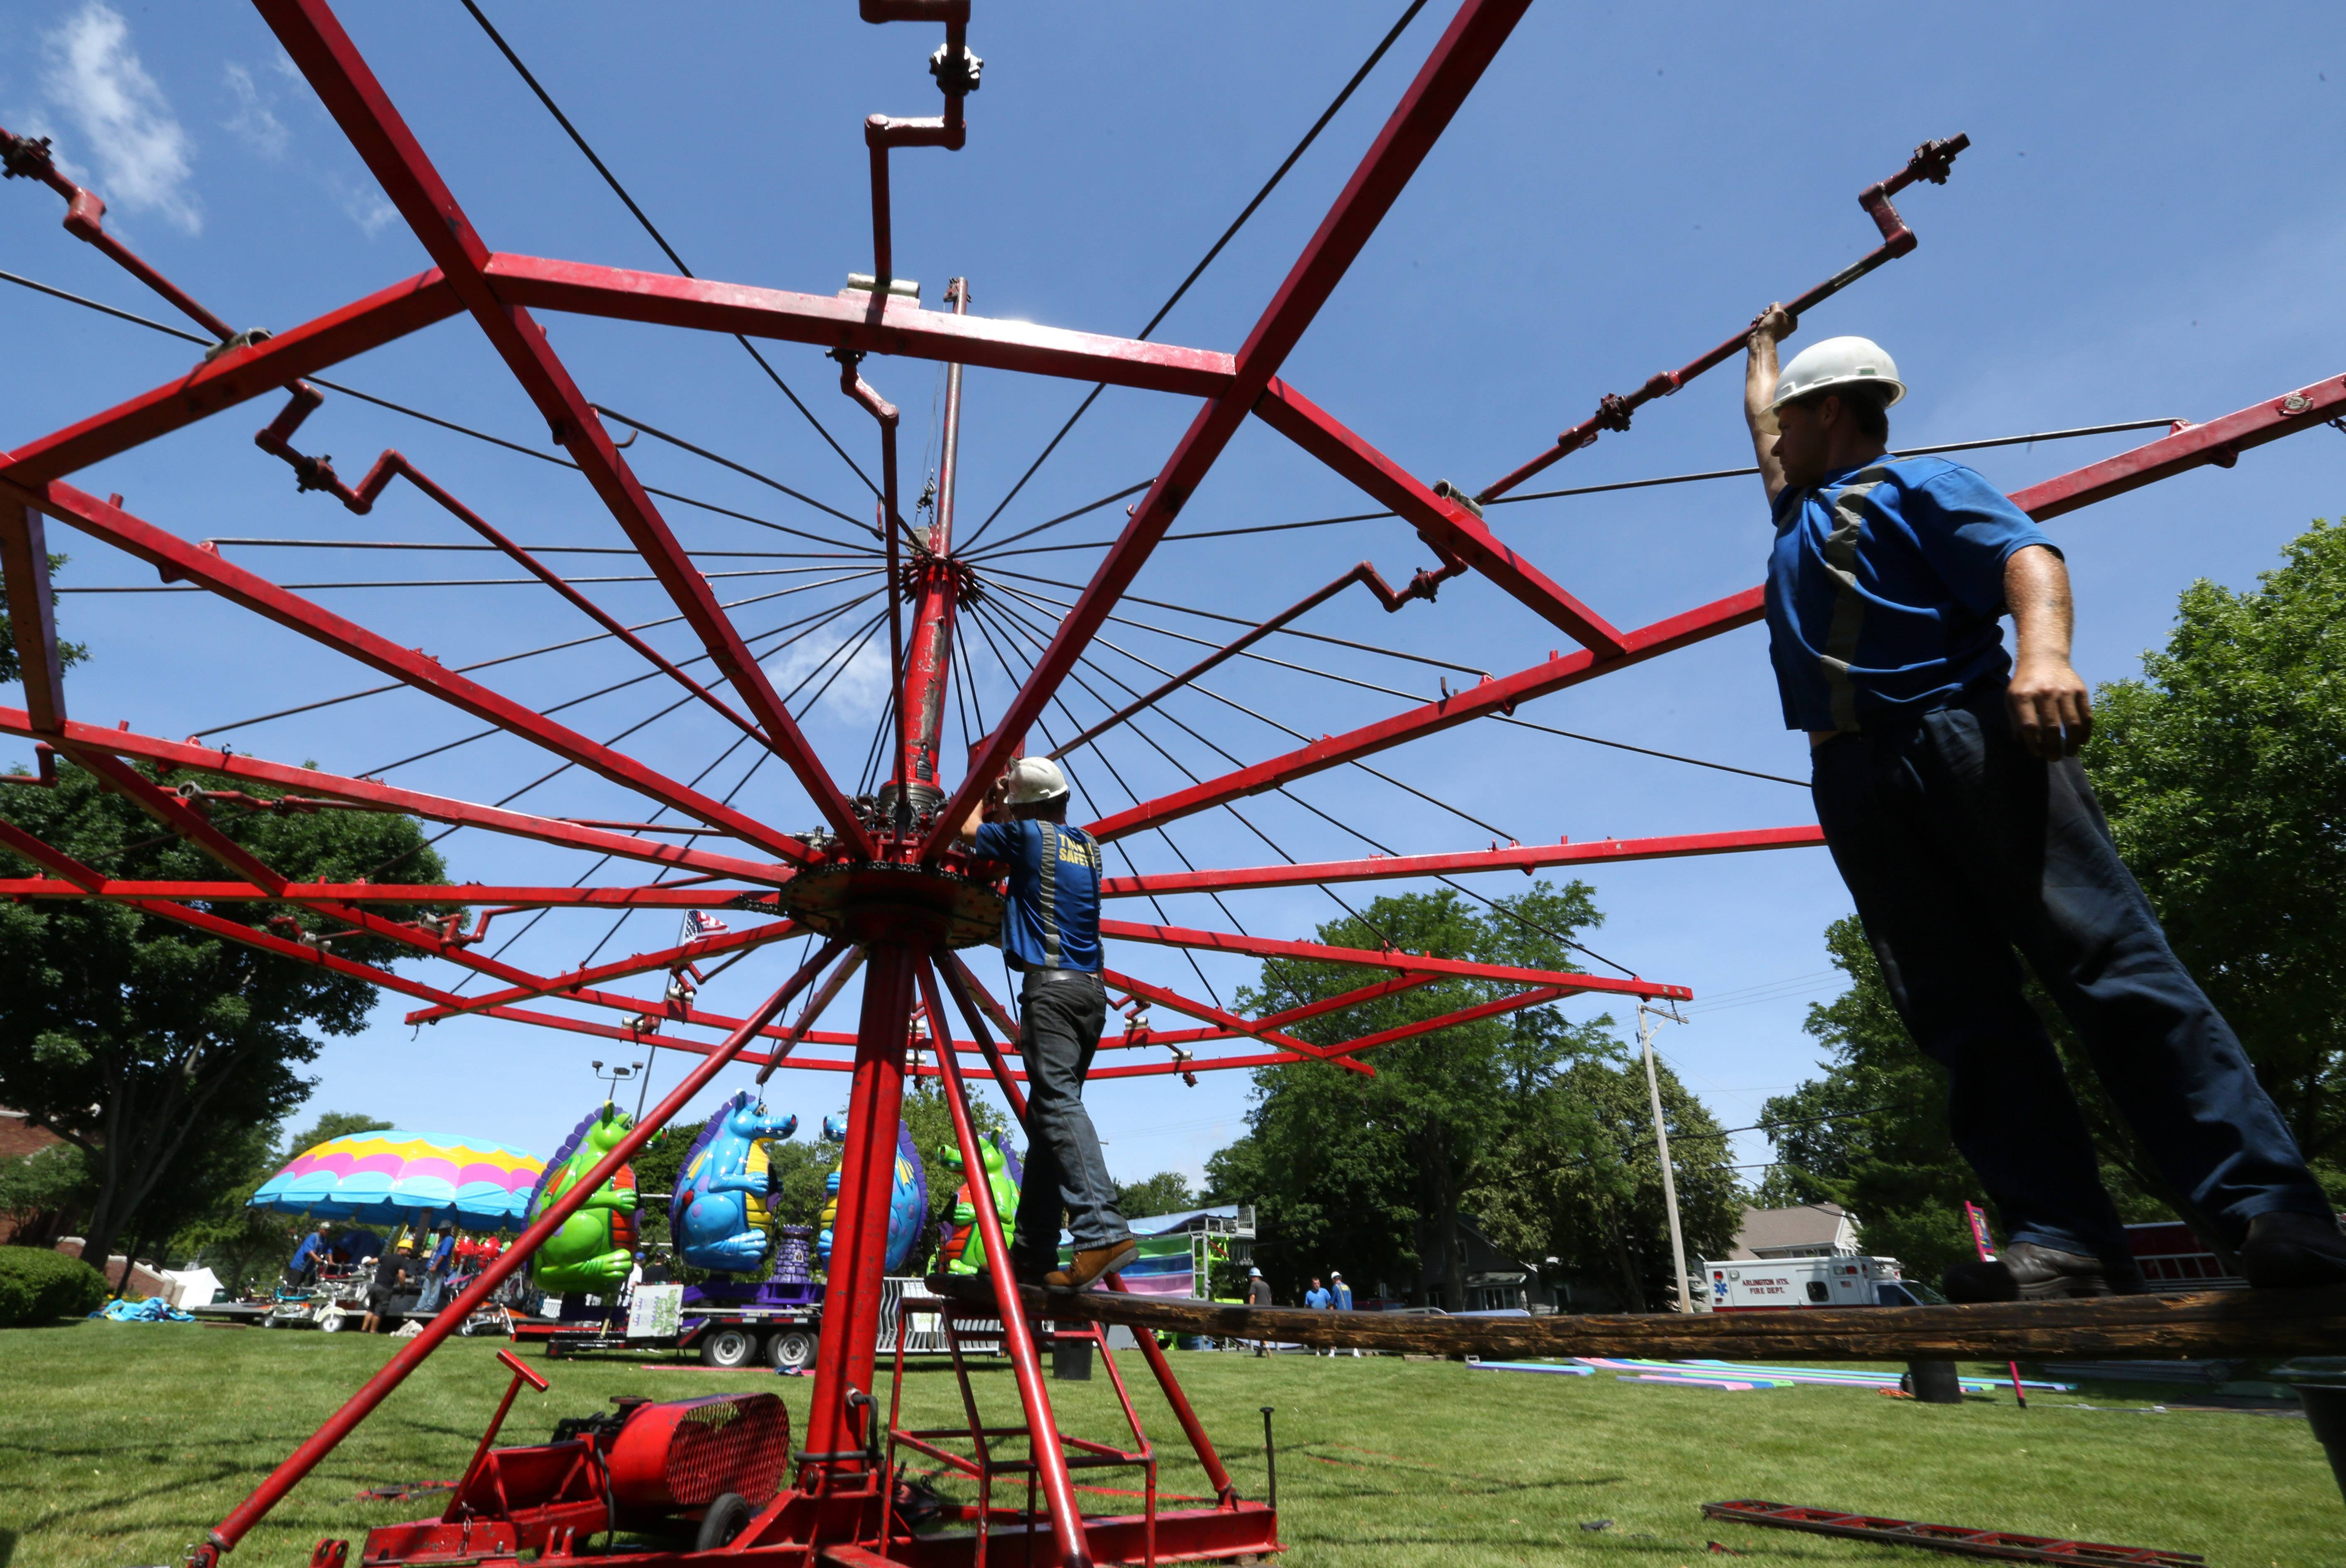 Workers assemble a ride at Recreation Park in Arlington Heights for Wednesday's opening.